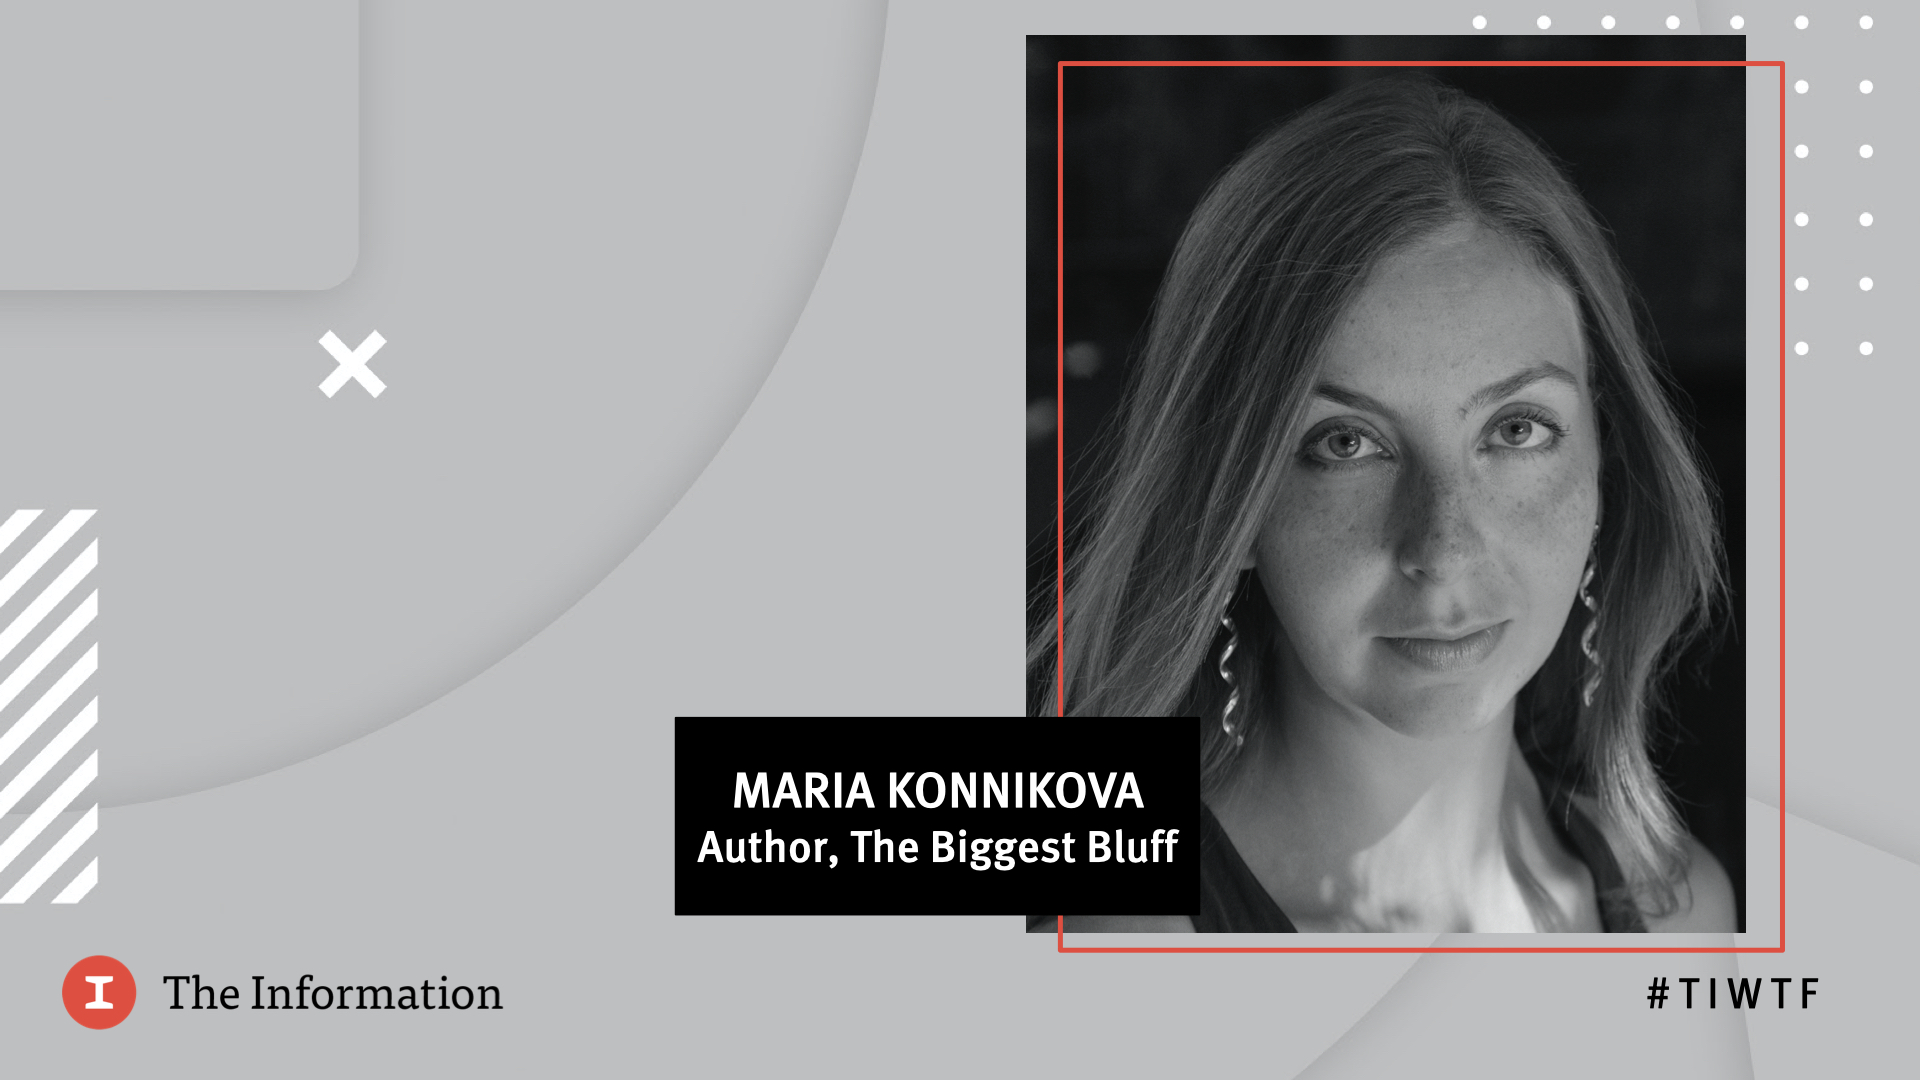 WTF 2020 - Author of The Biggest Bluff, Maria Konnikova, in conversation with Jessica Lessin, Founder & CEO of The Information